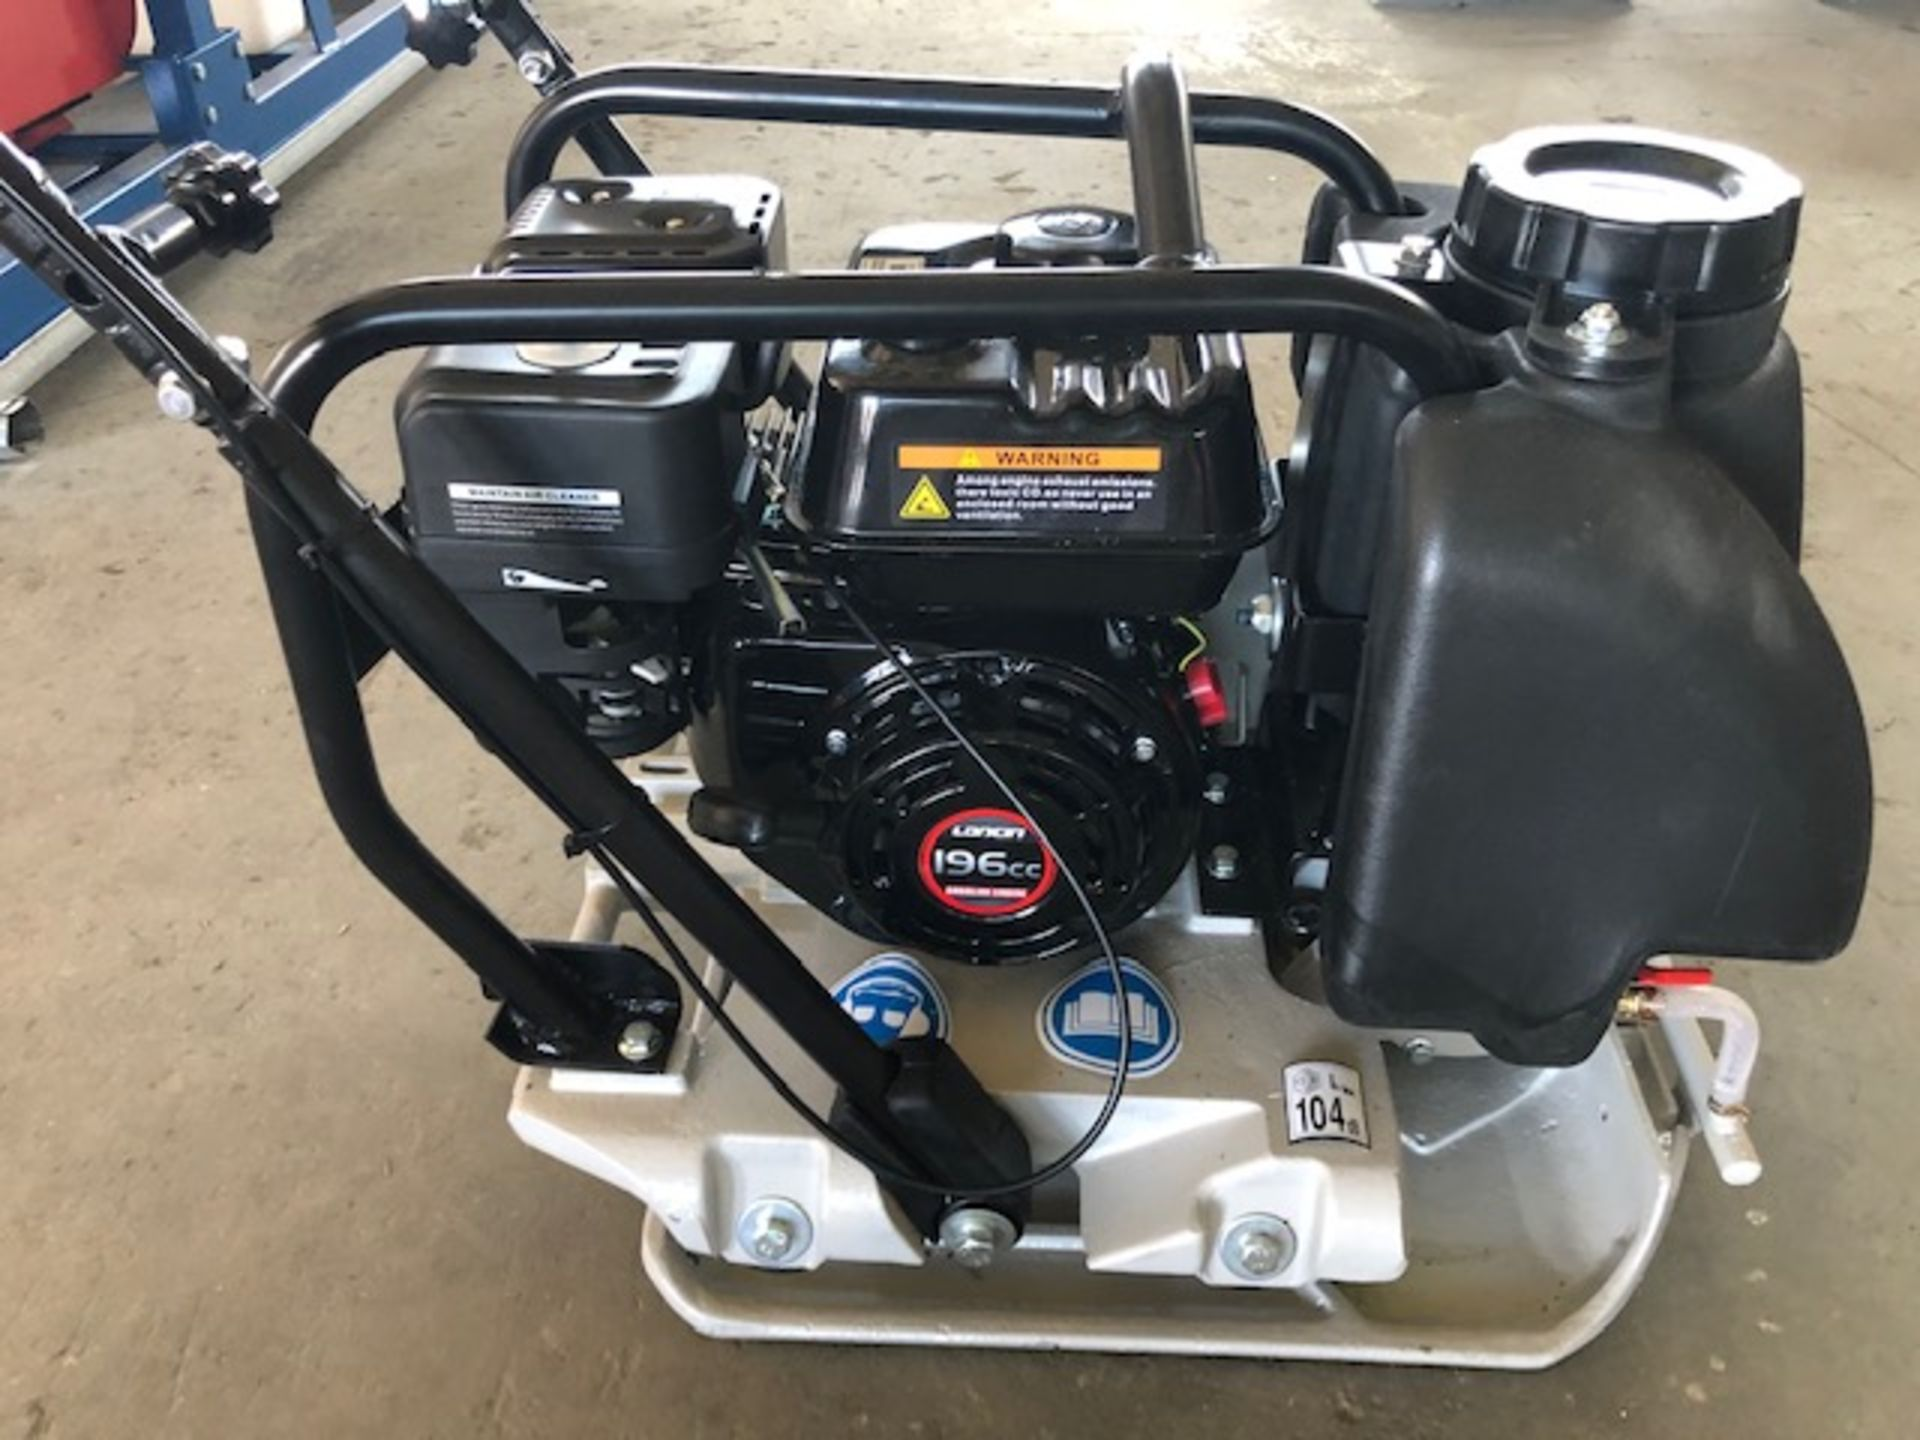 Lot 3 - 2020 Mustang LF-88 Plate Compactor